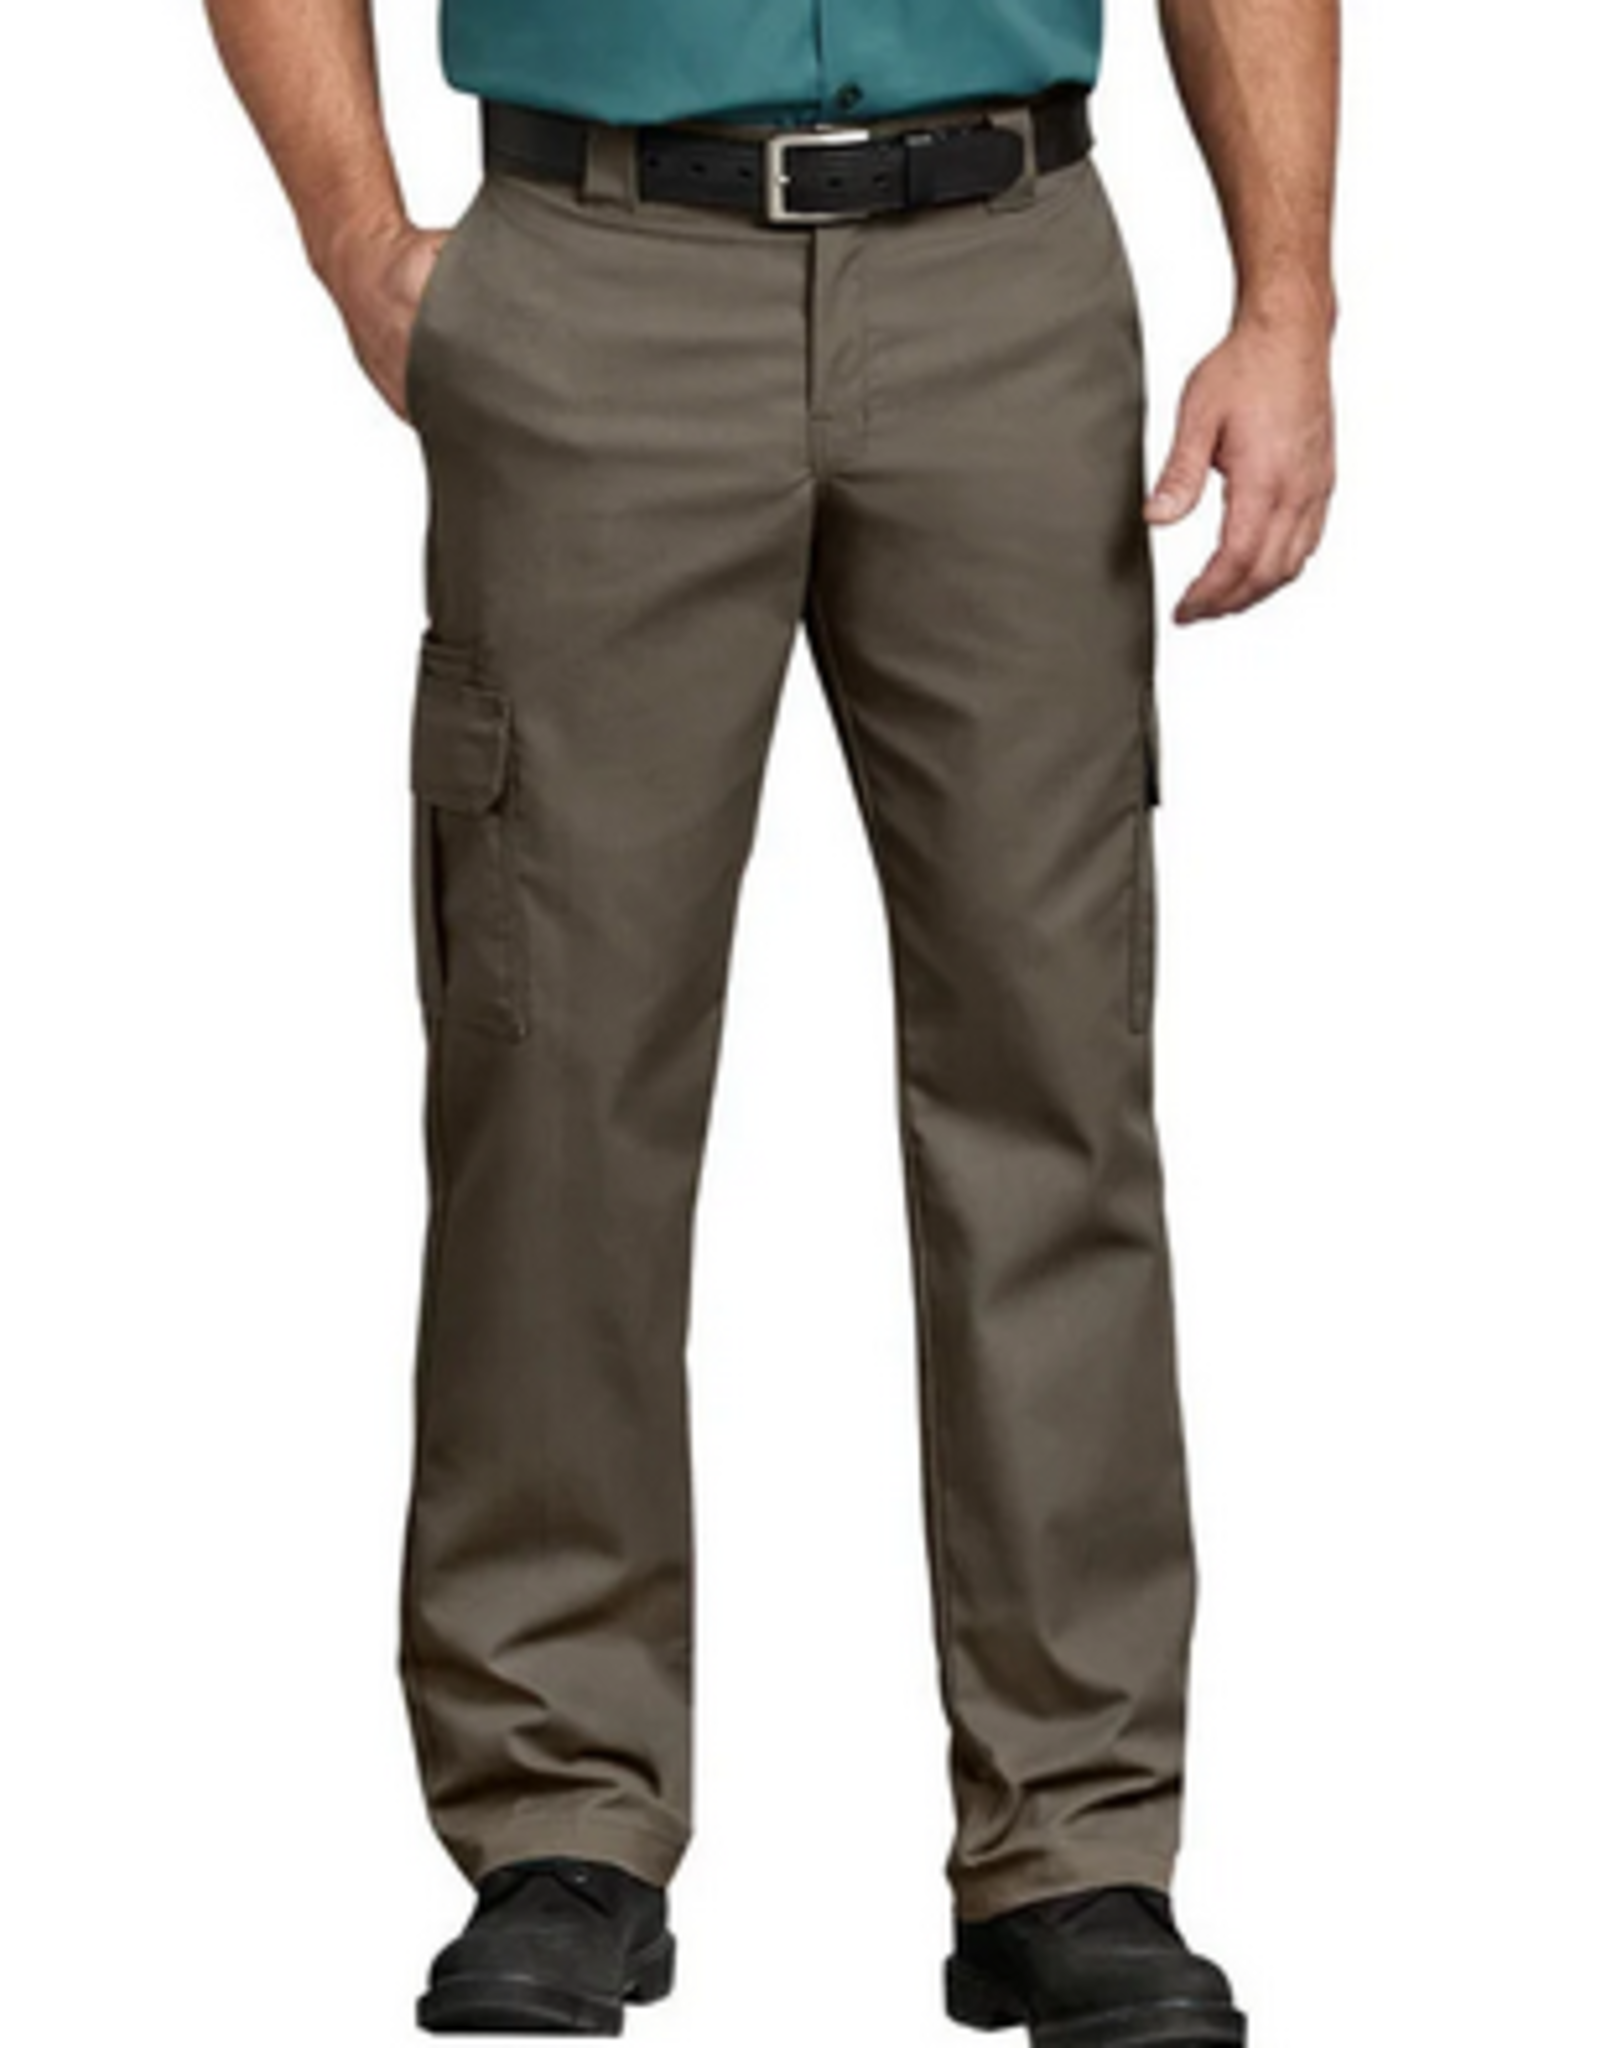 DICKIES DICKIES FLEX REGULAR FIT STRAIGHT LEG CARGO PANT